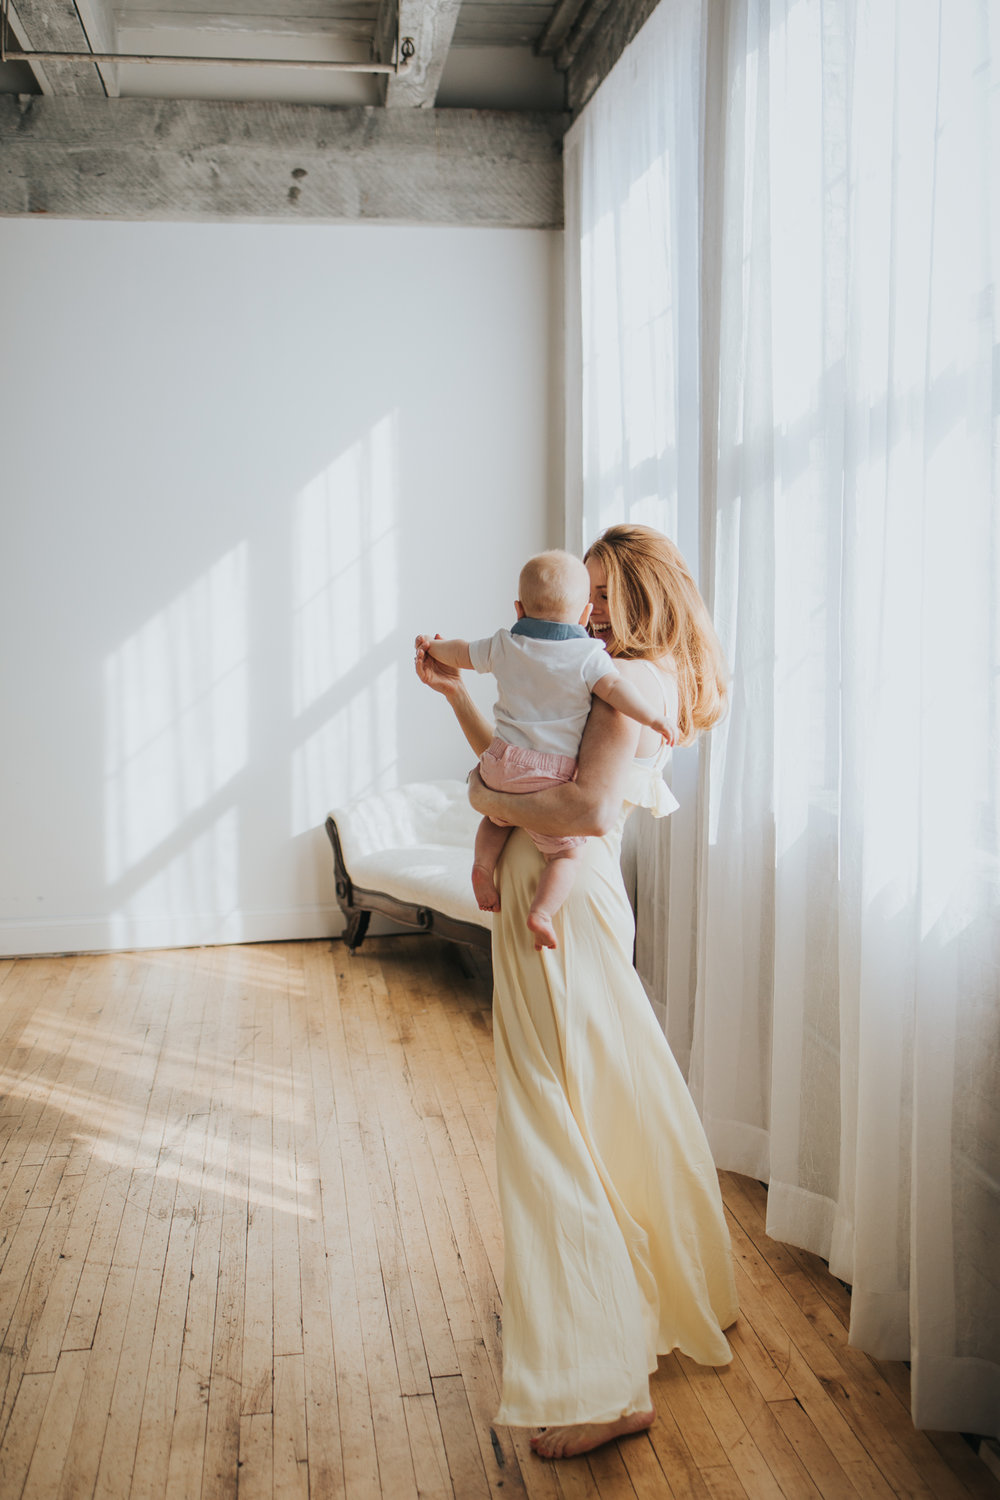 mother dancing with baby boy - Twin Cities Newborn Photographer